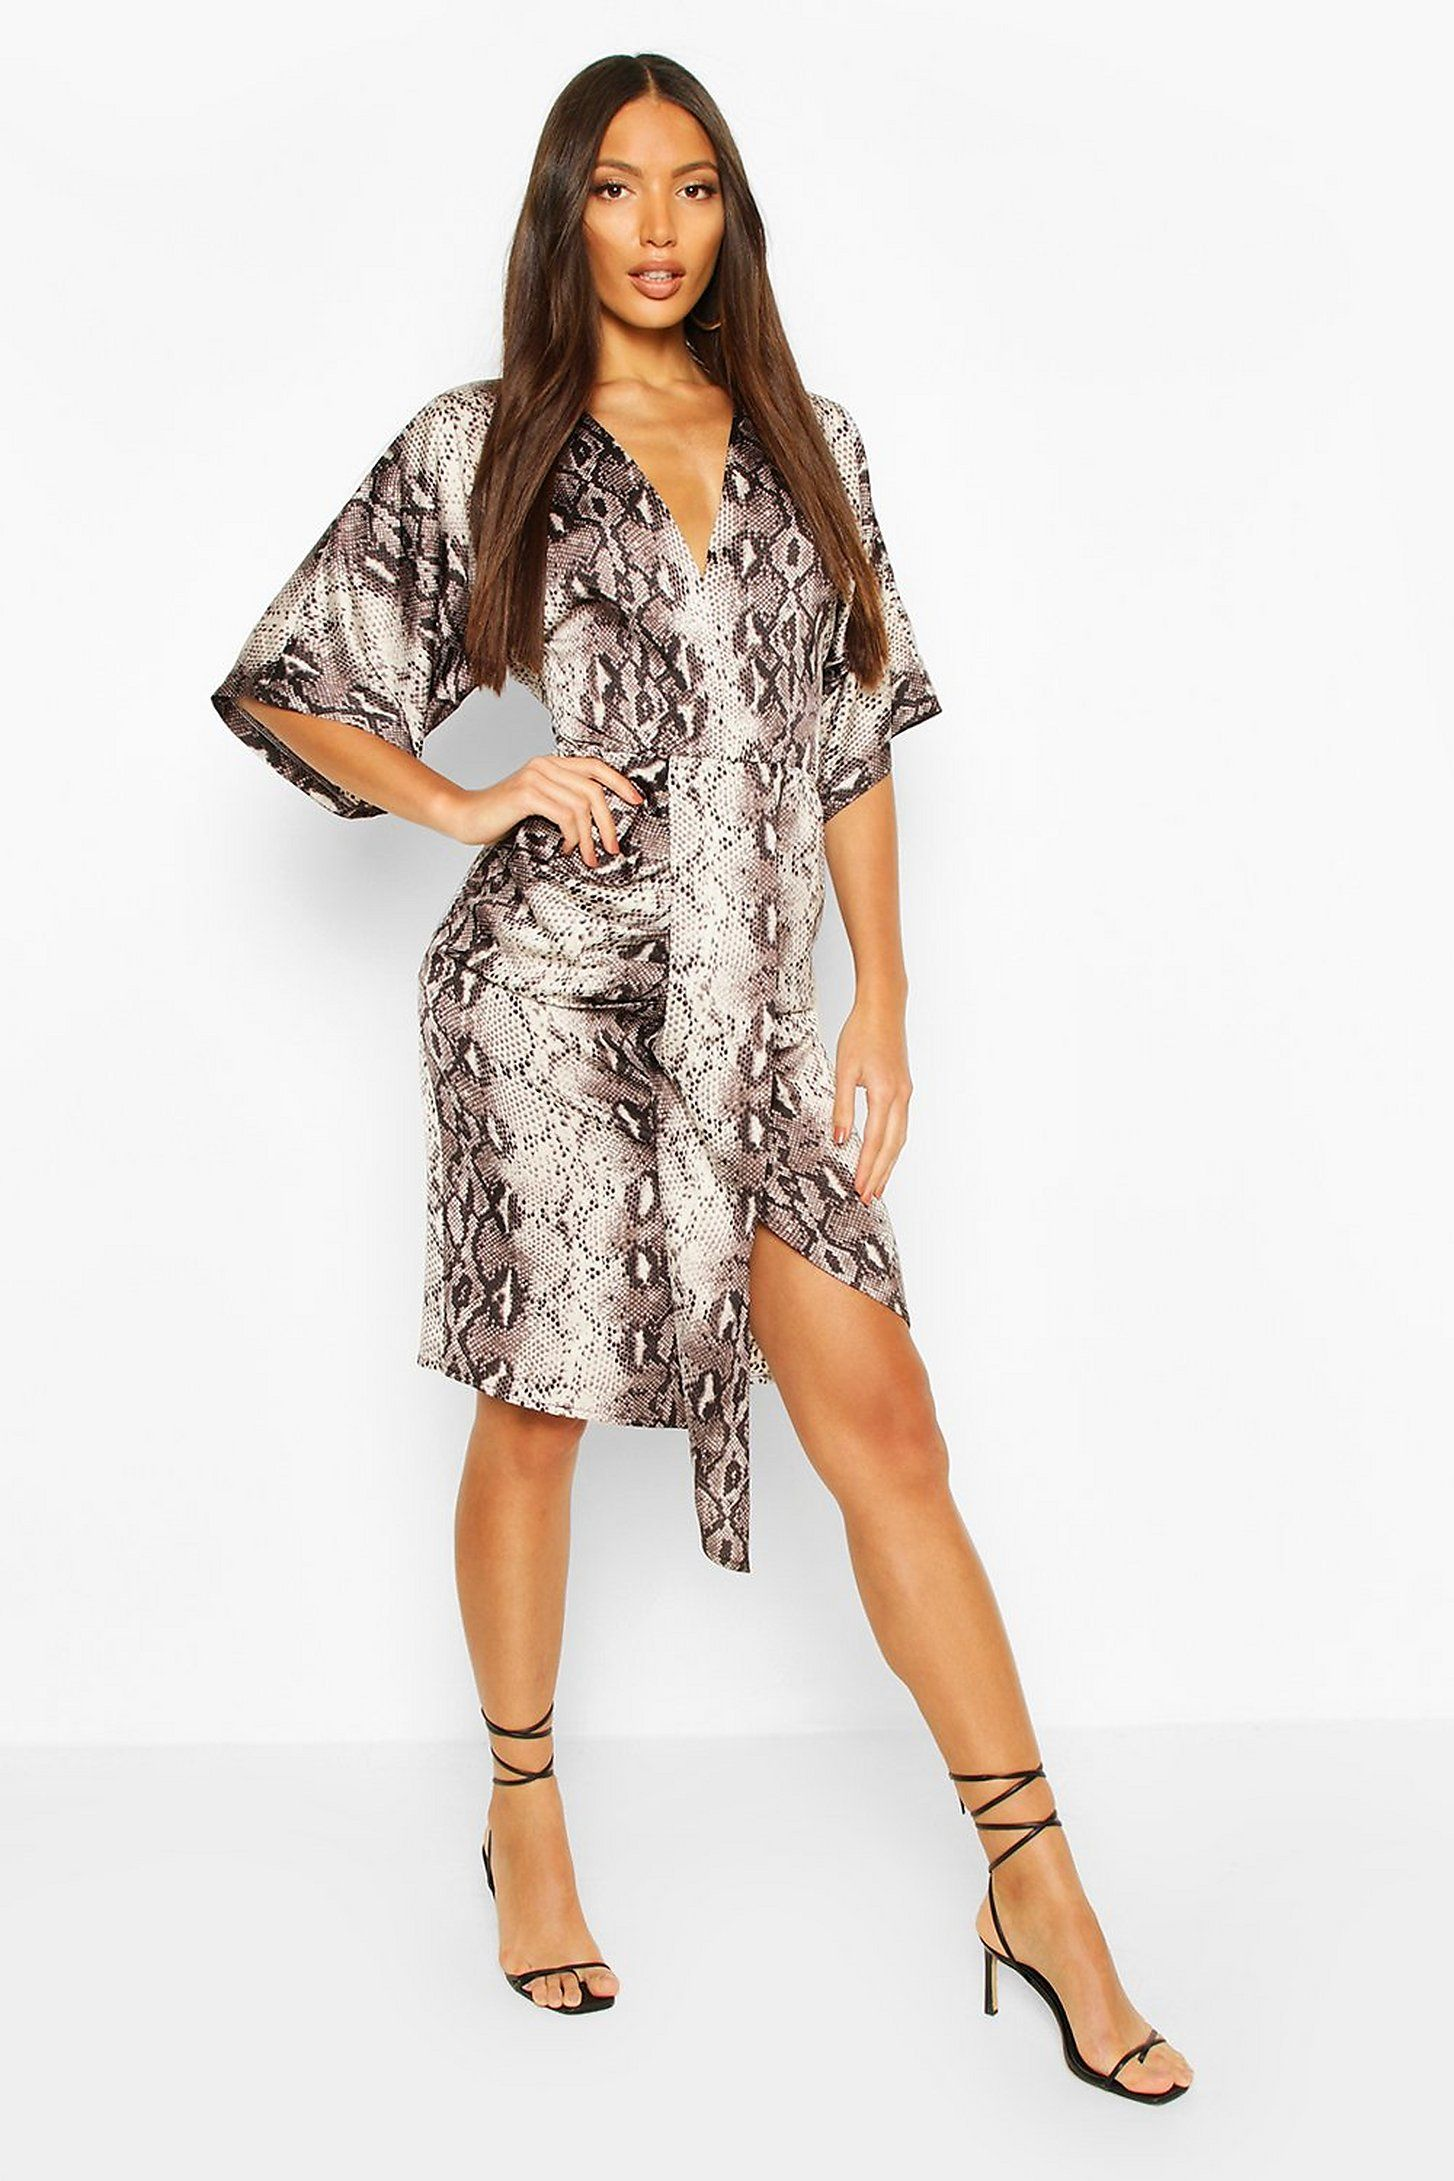 2020 Women Dress Casual Dress Print Dress Outfit Business Casual Conference Attire